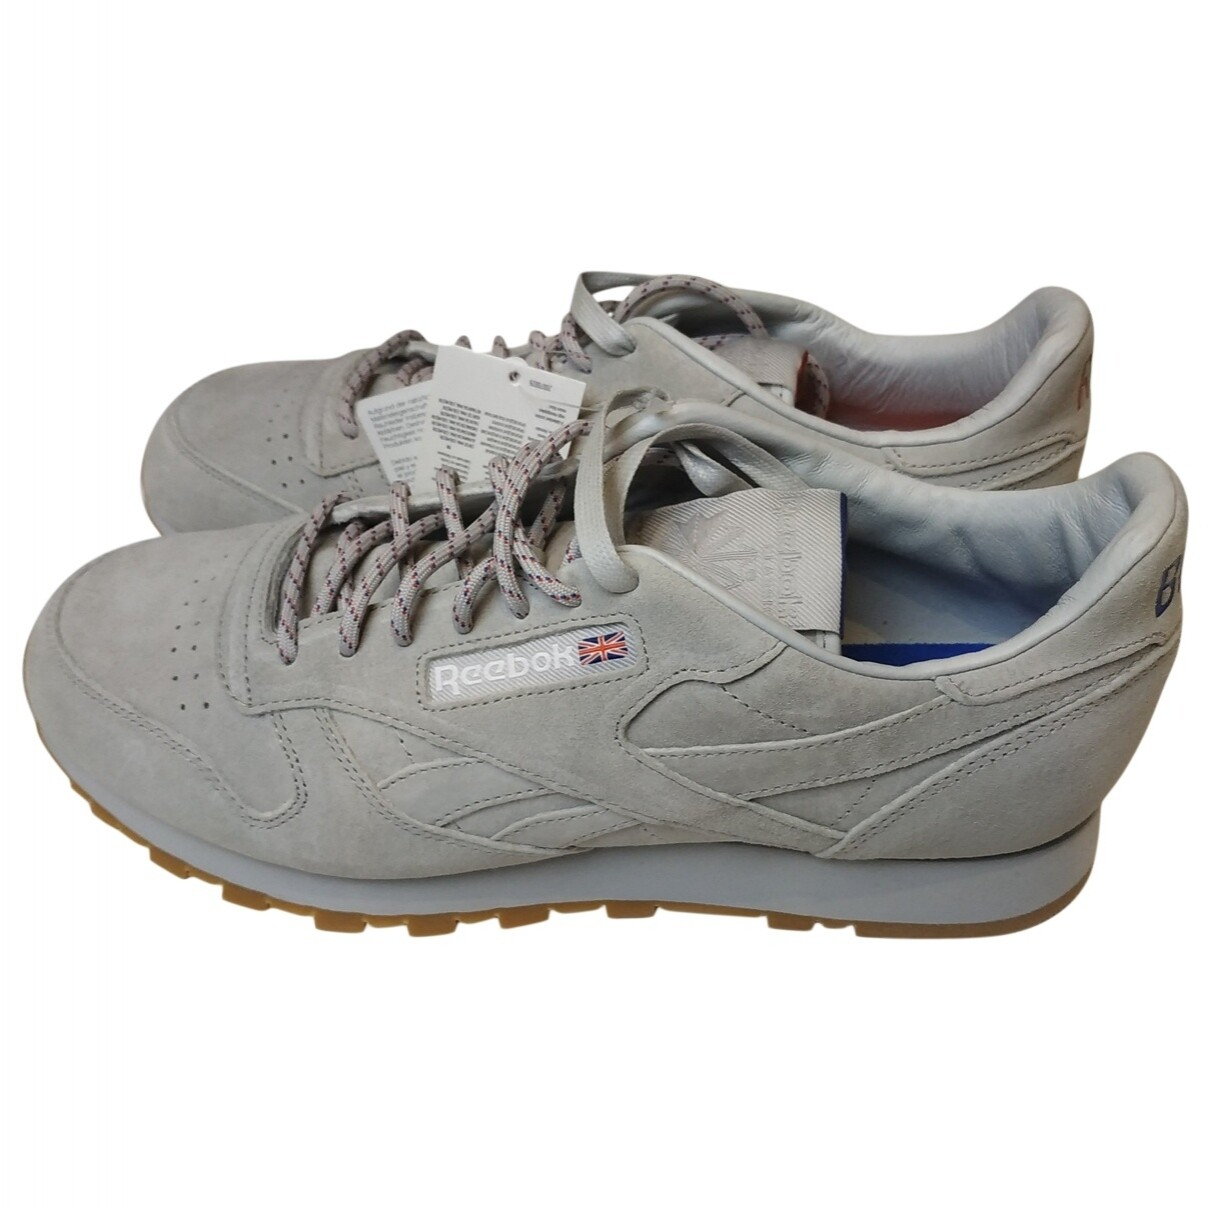 Reebok Limited Edition, size 44,5